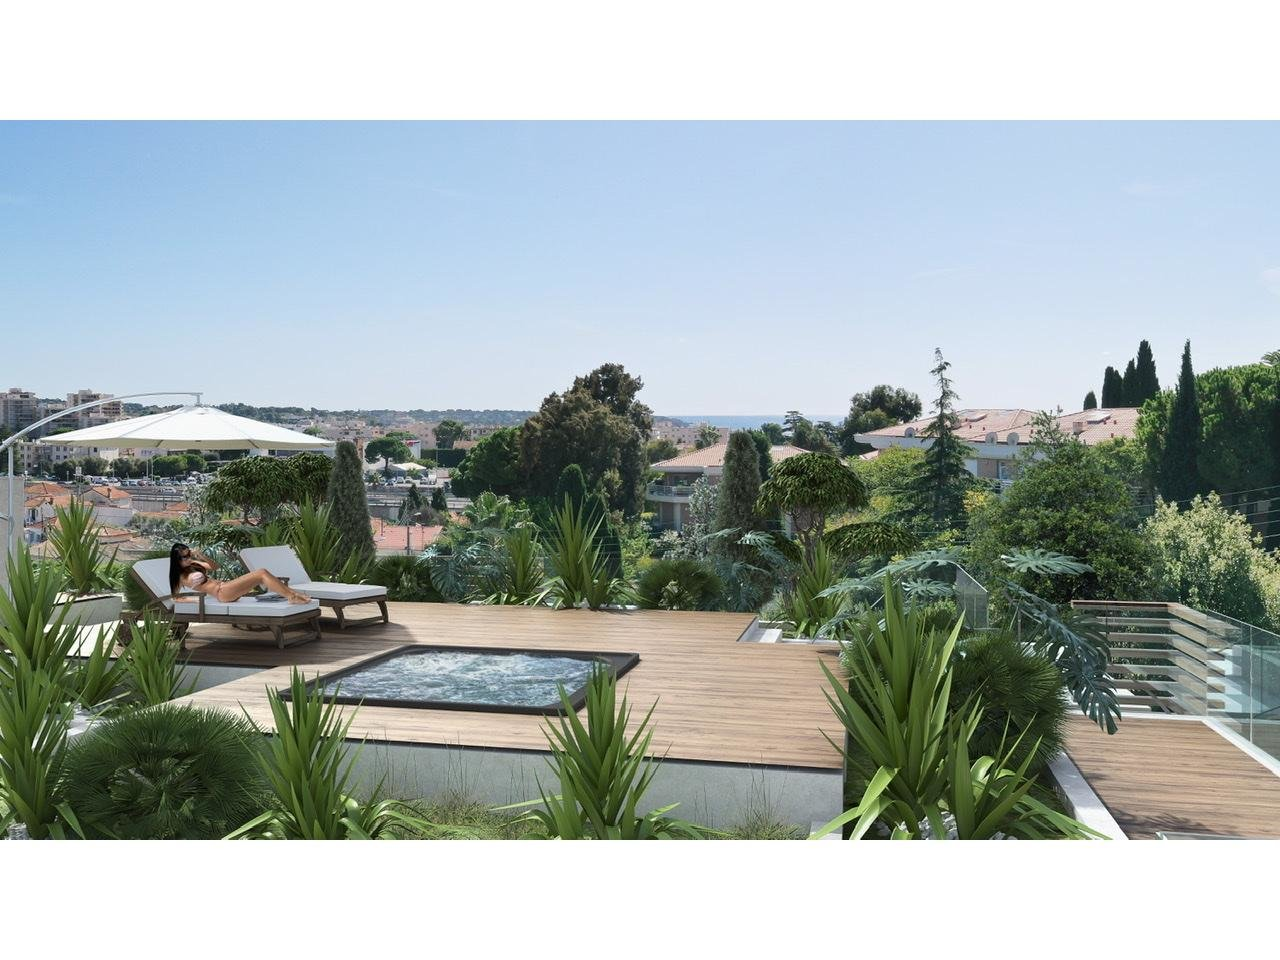 Appartement  4 Rooms 98.04m2  for sale   720000 €